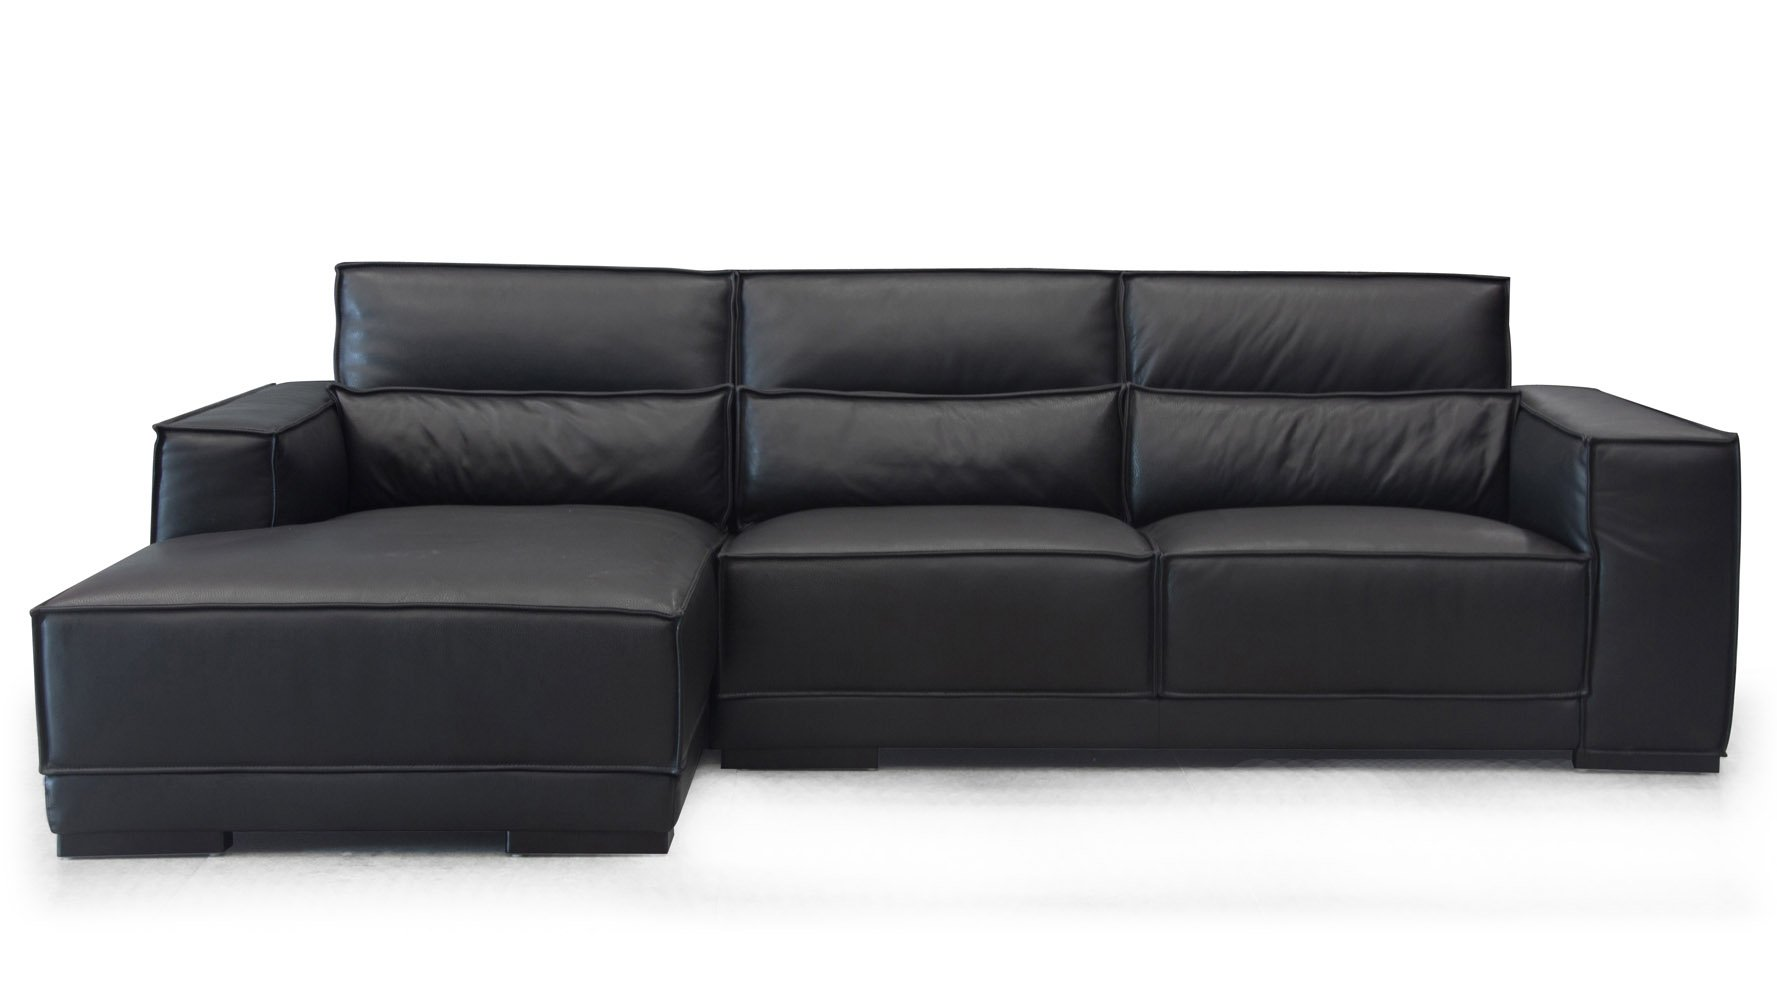 Modern Black Top Grain Leather Alexis Sectional with Pillows